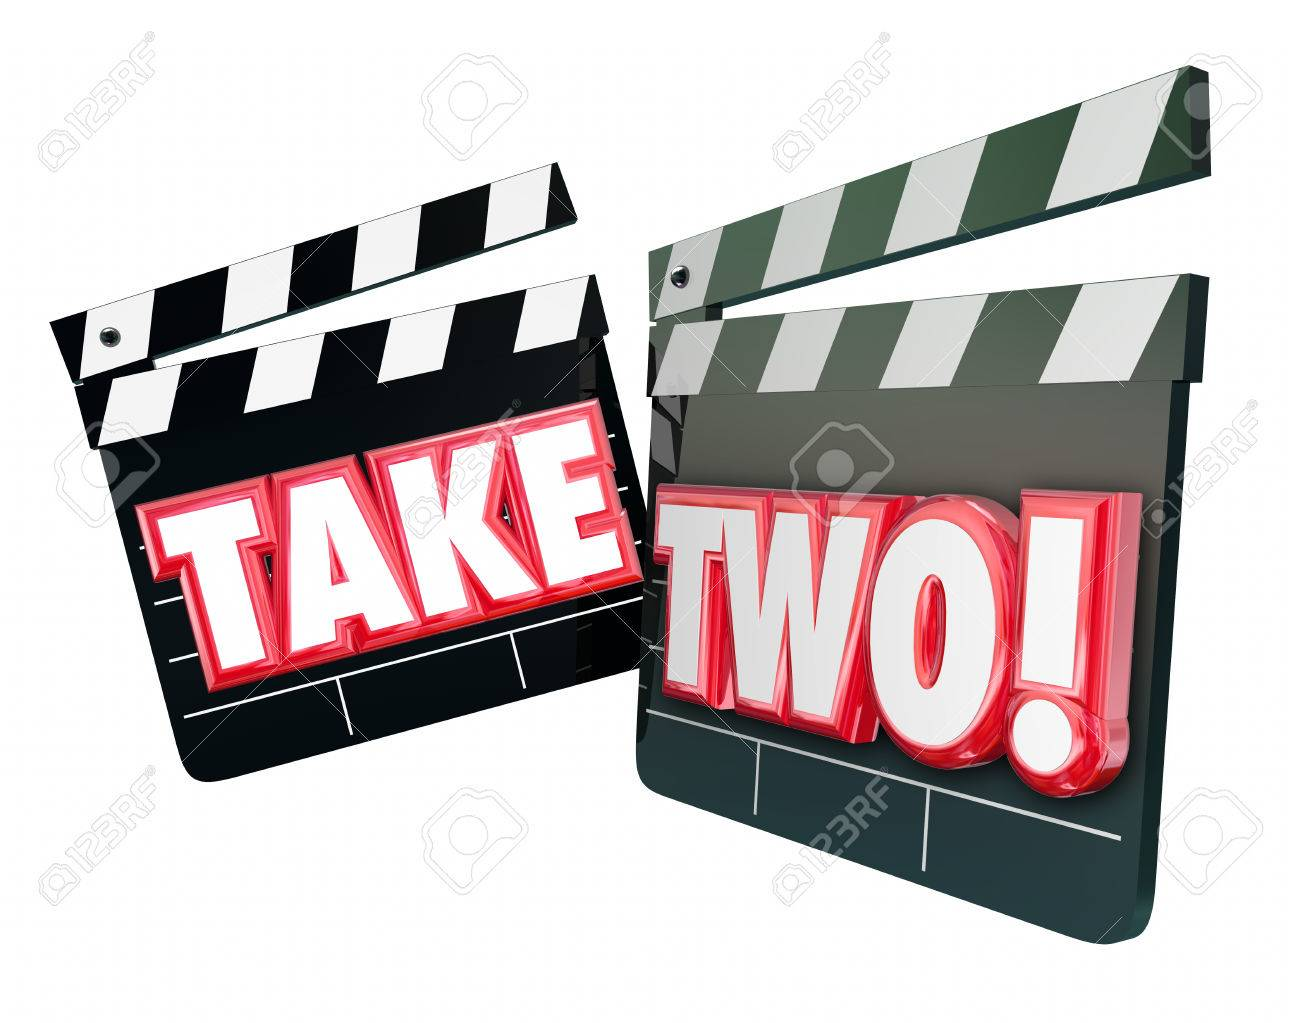 Take Two 2 words on movie or film clapper boards to illustrate